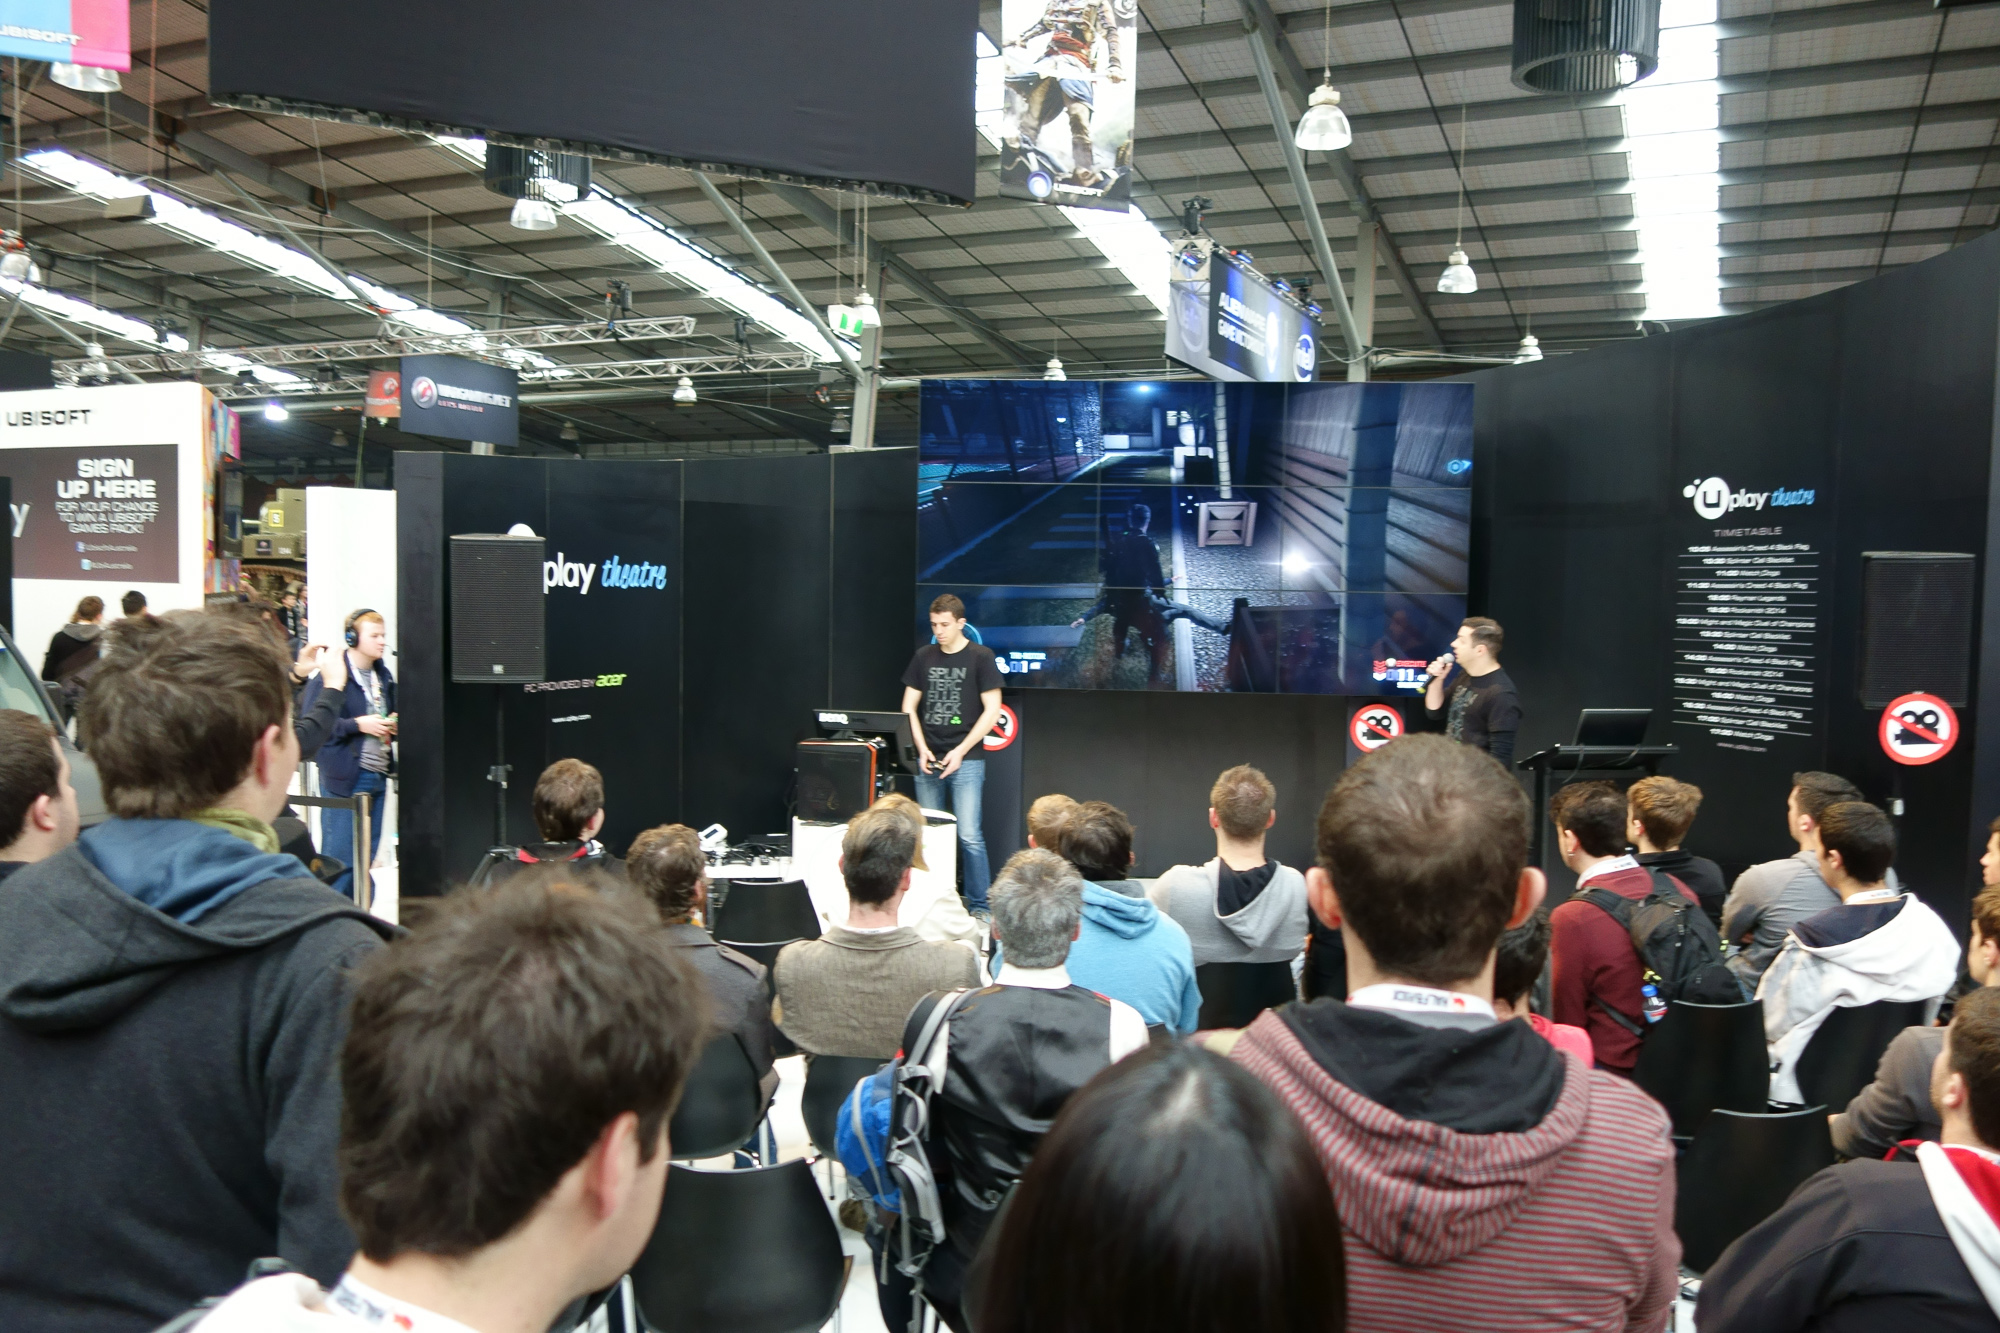 Splinter Cell Blacklist gameplay demo. Comes out on Steam August 20th, cannot wait.